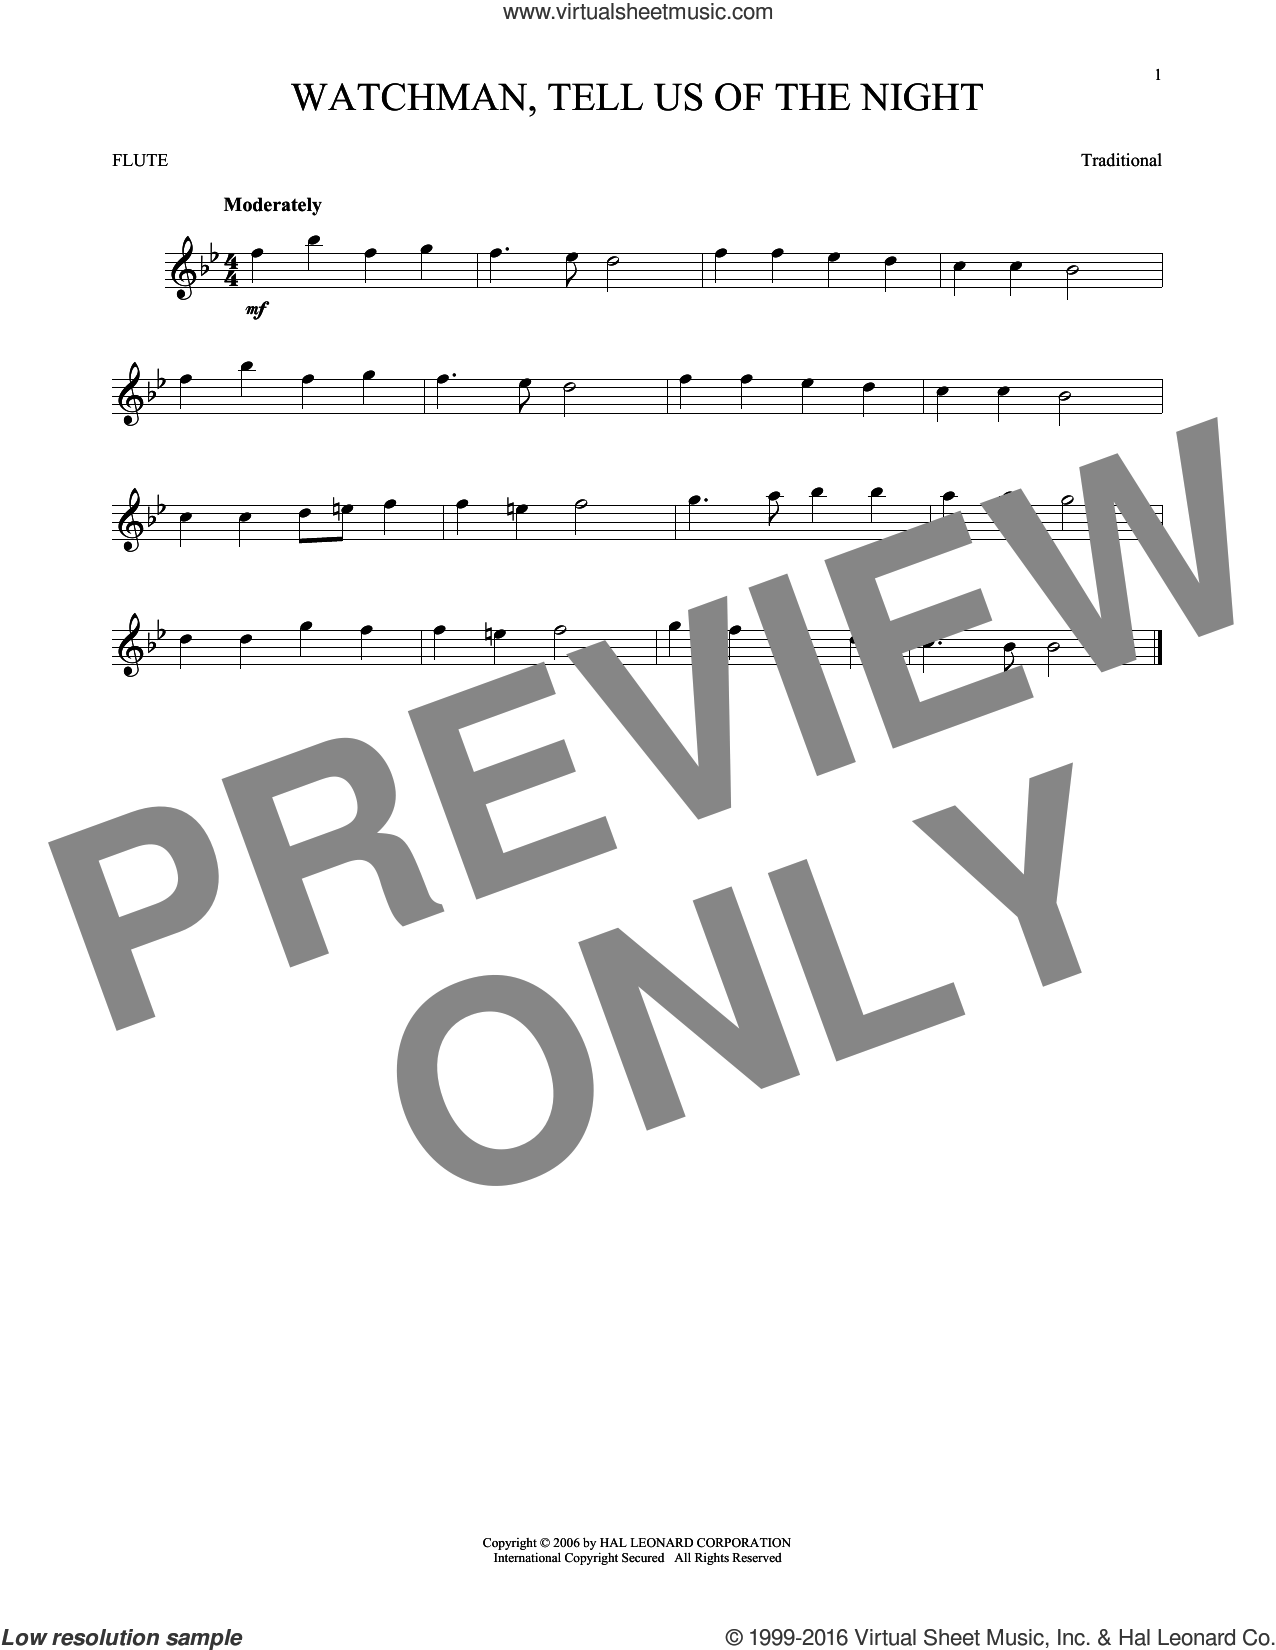 Watchman, Tell Us Of The Night sheet music for flute solo by John Bowring, Miscellaneous and Jacob Hintze, intermediate skill level